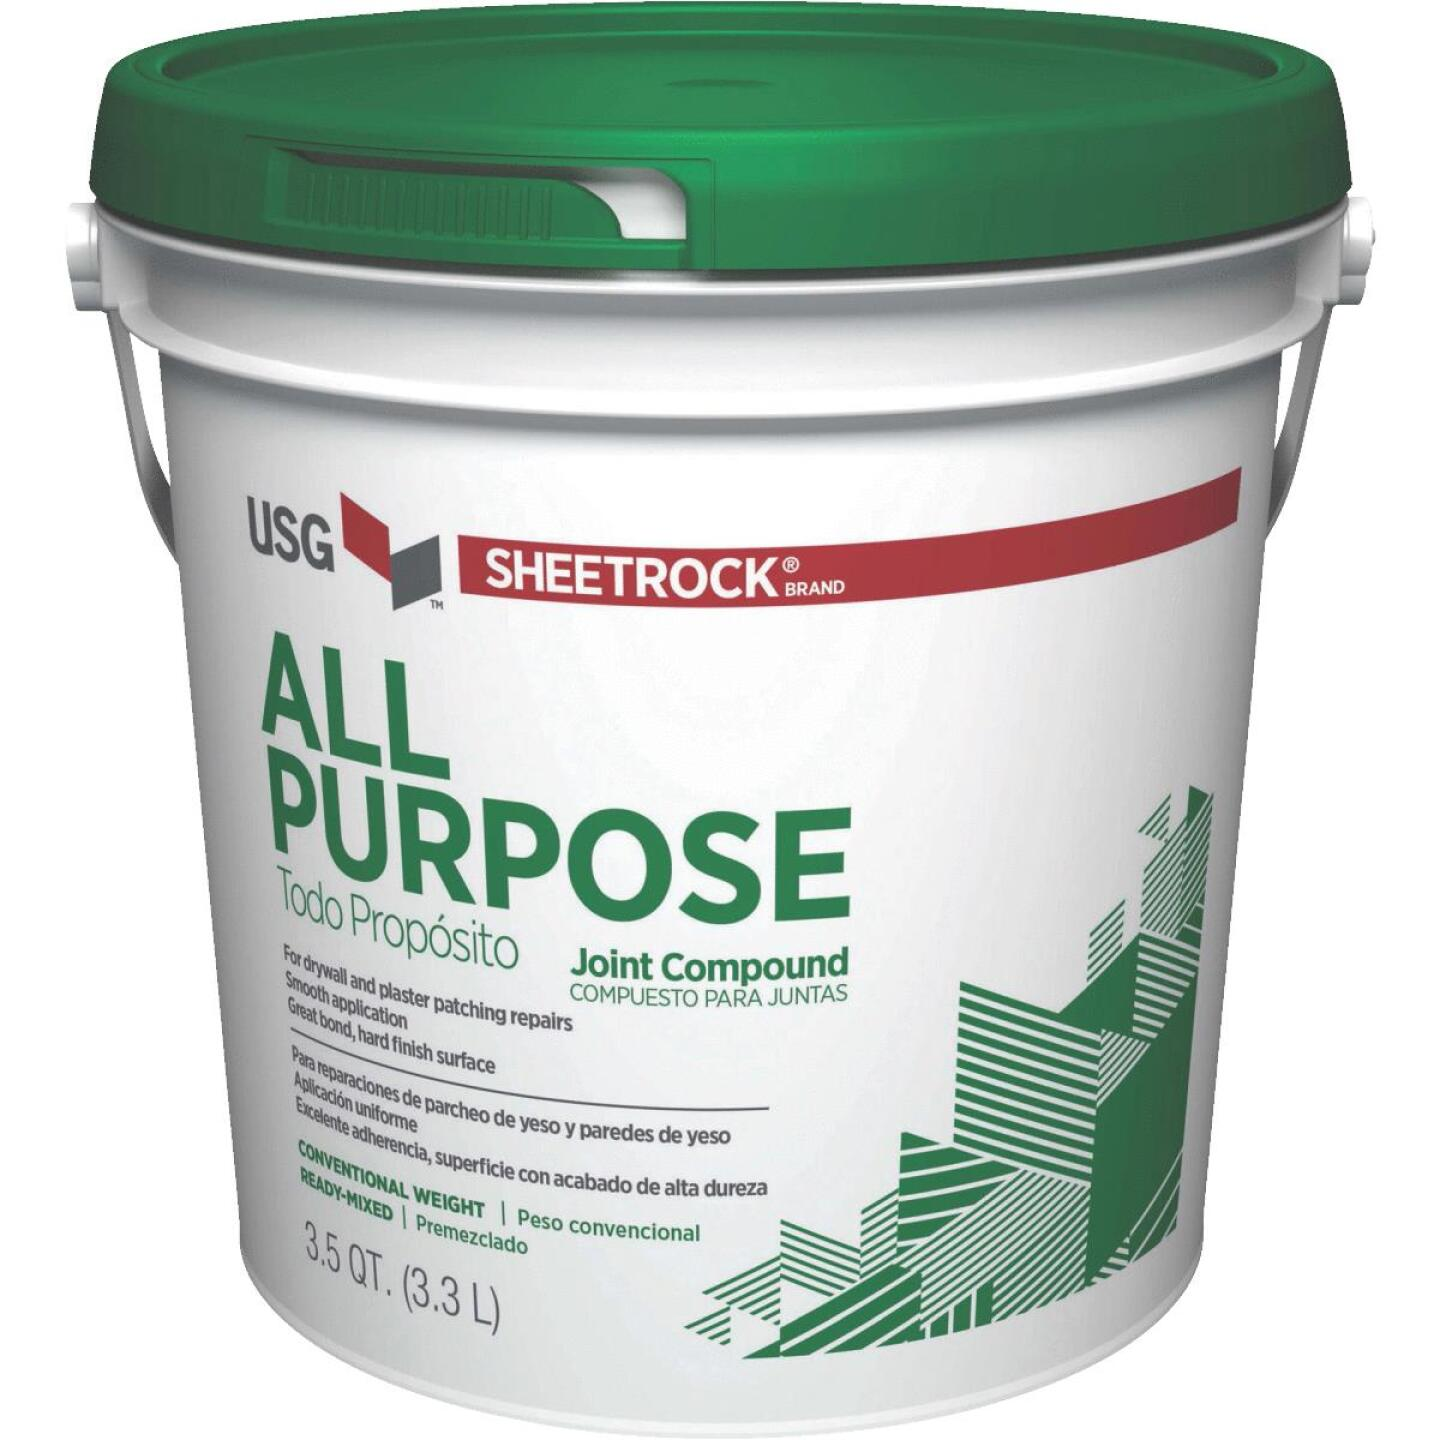 Sheetrock 3.5 Qt. Pre-Mixed All-Purpose Drywall Joint Compound Image 1